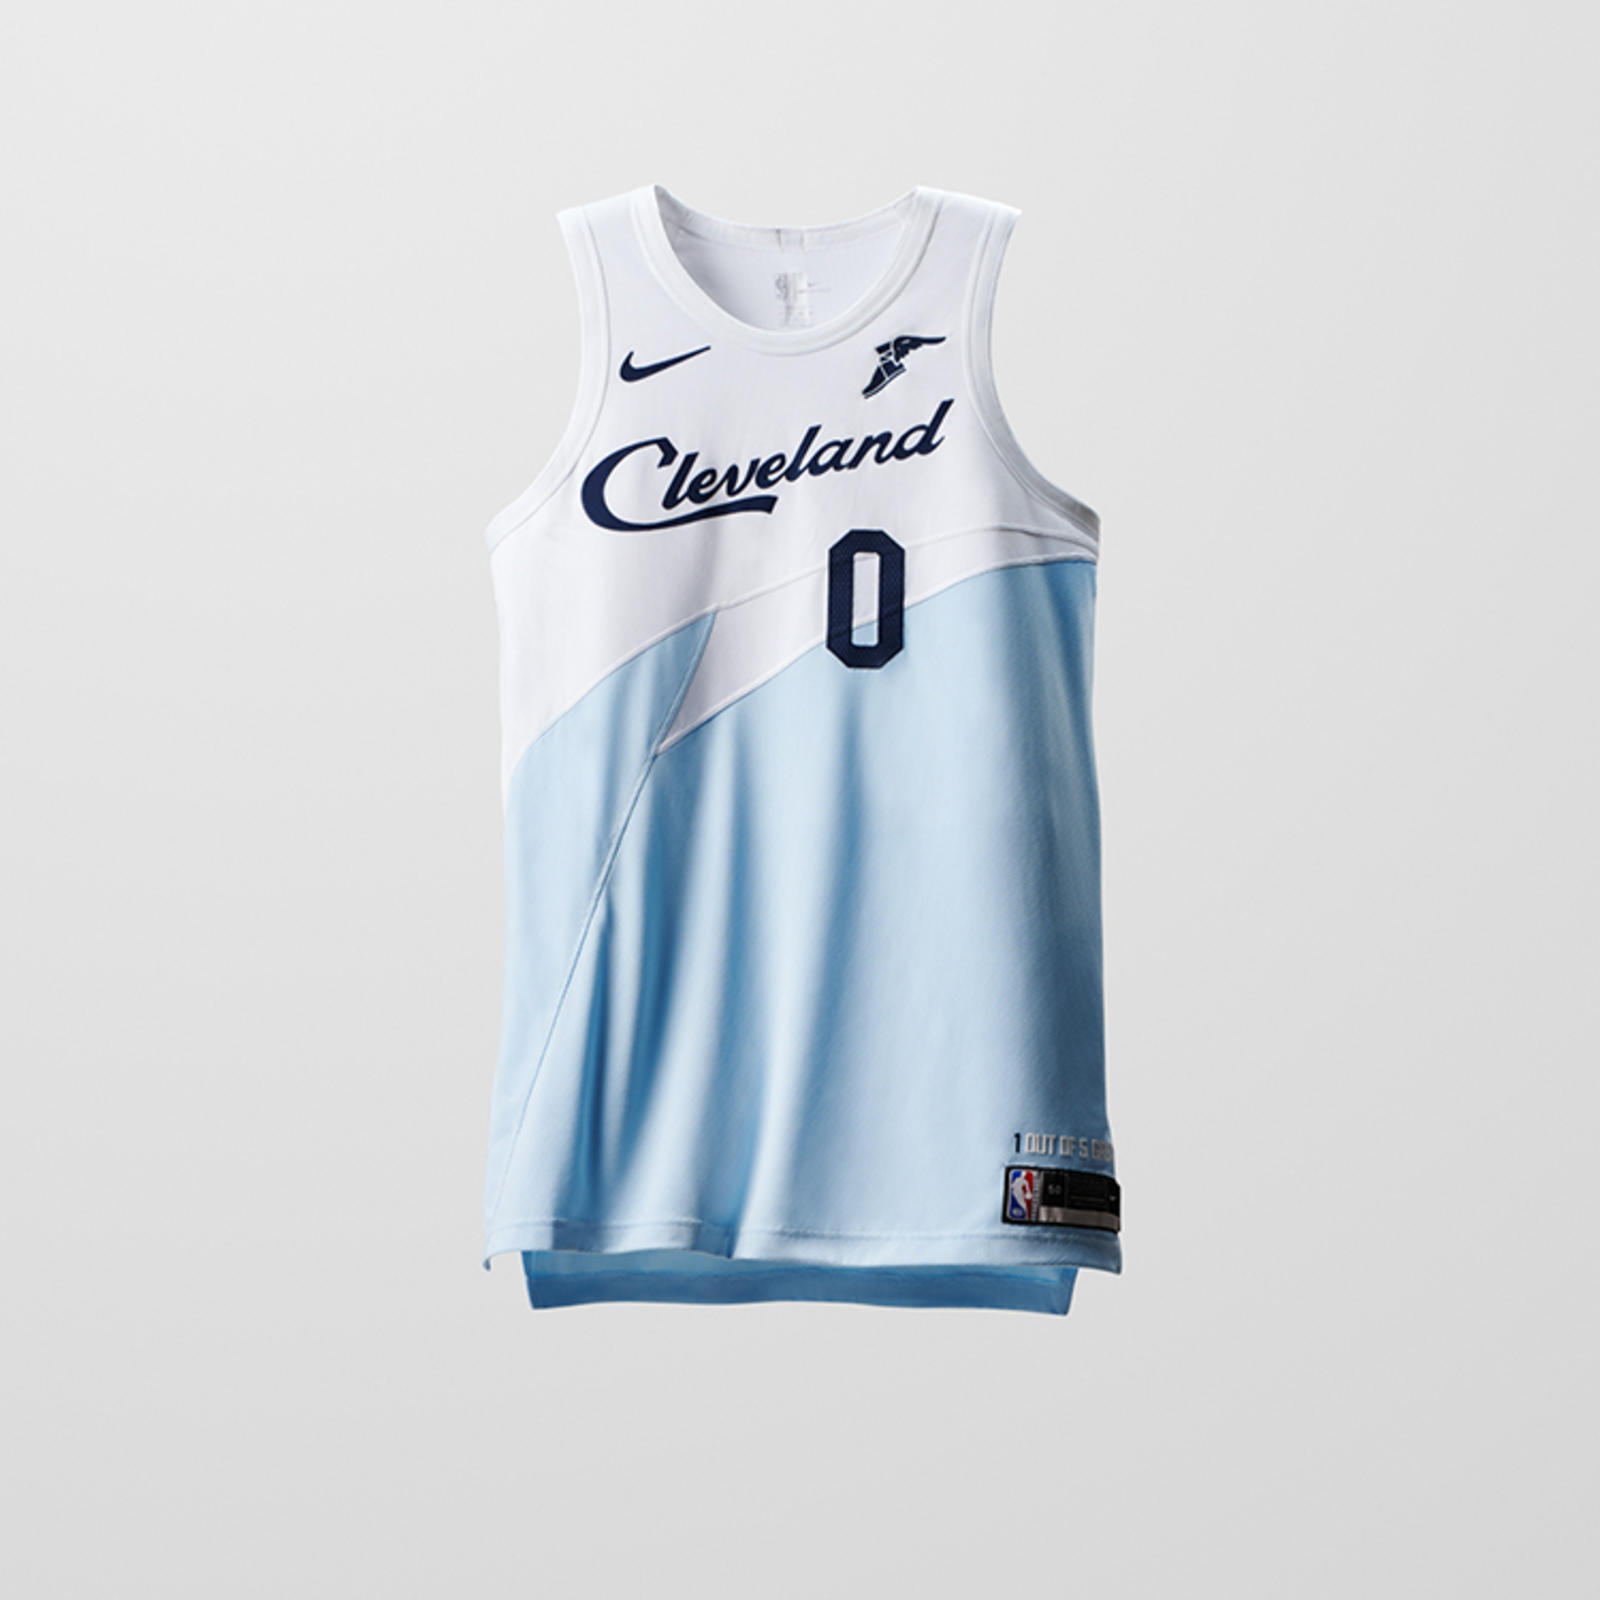 Introducing the Nike x NBA EARNED Edition Uniforms 12